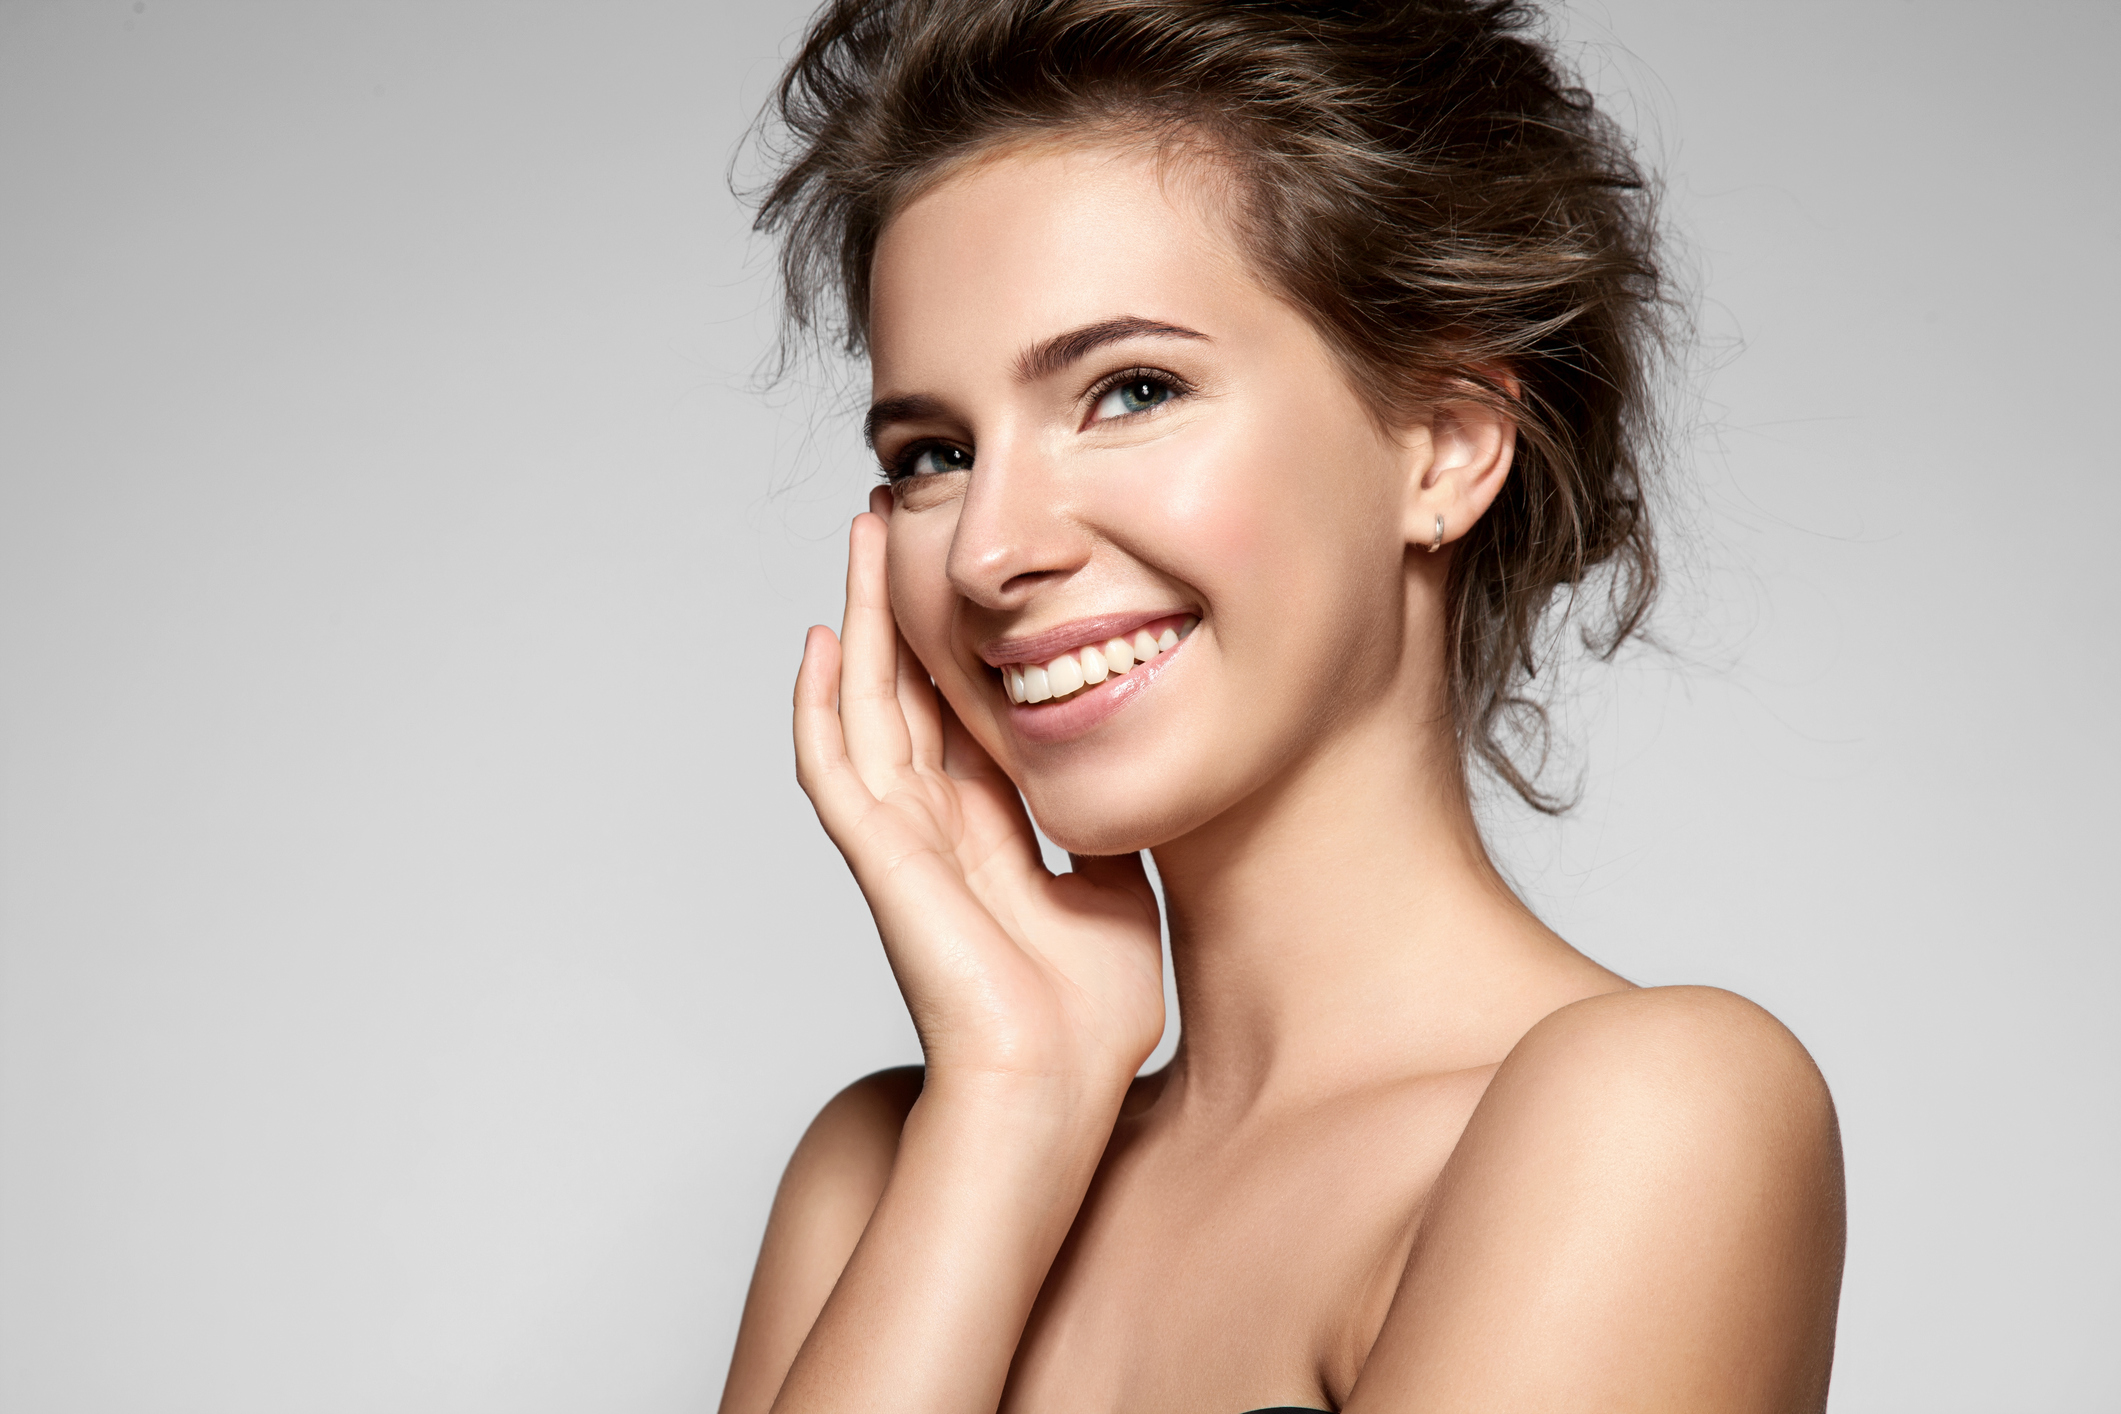 Electrolysis - Electrolysis is the only time tested, safe, and FDA approved method to achieve permanent hair removal for all skin types and hair colors.